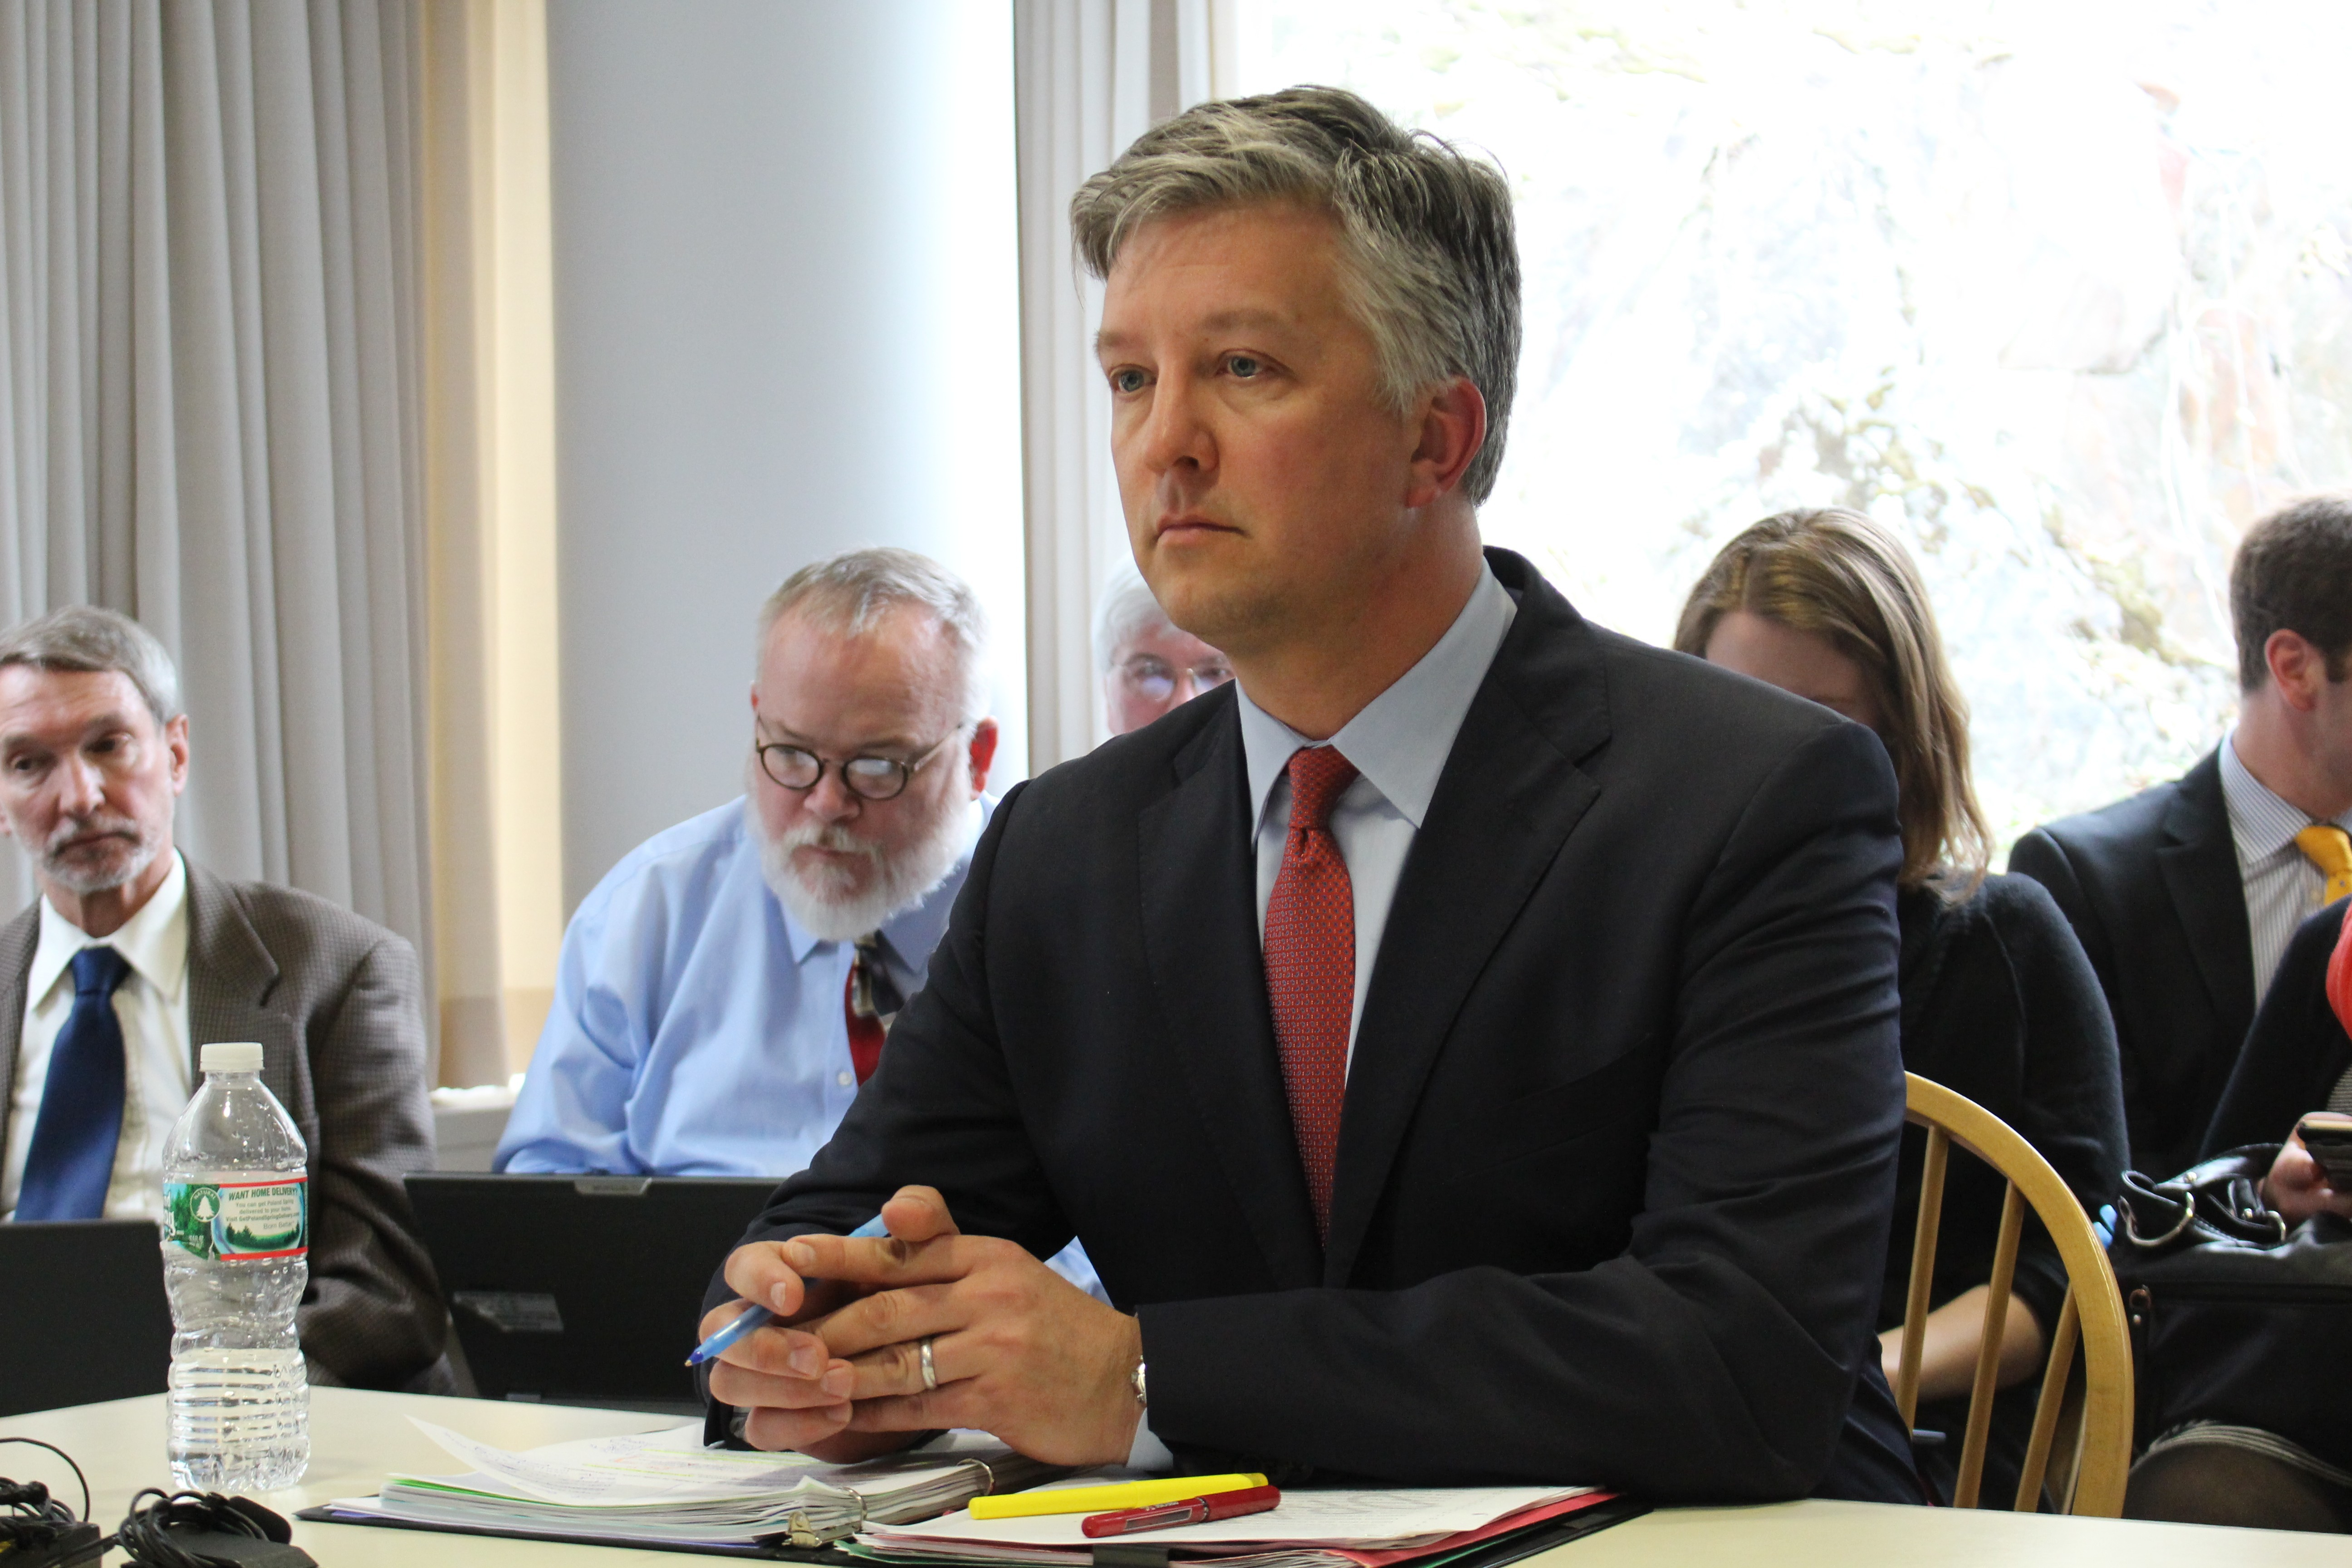 Vermont GOP Vice Chair Brady Toensing Lands a Job at Department of Justice